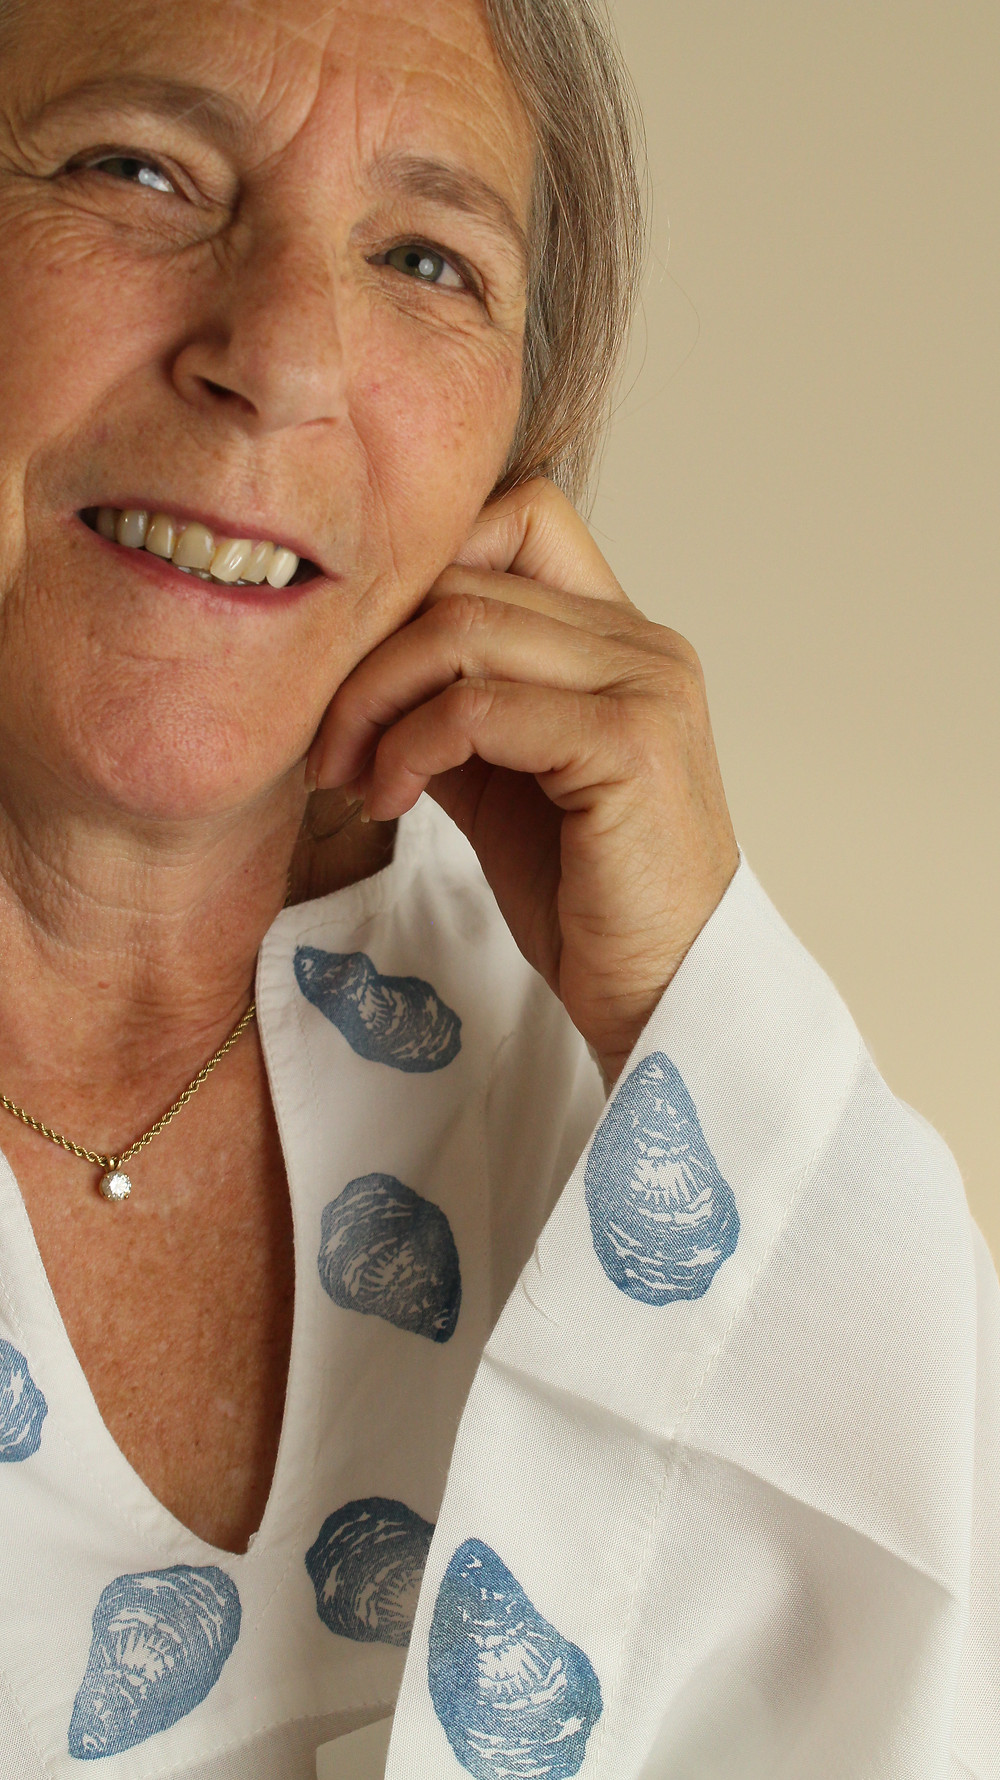 Summer style: hand block printed rayon tunic with oysters